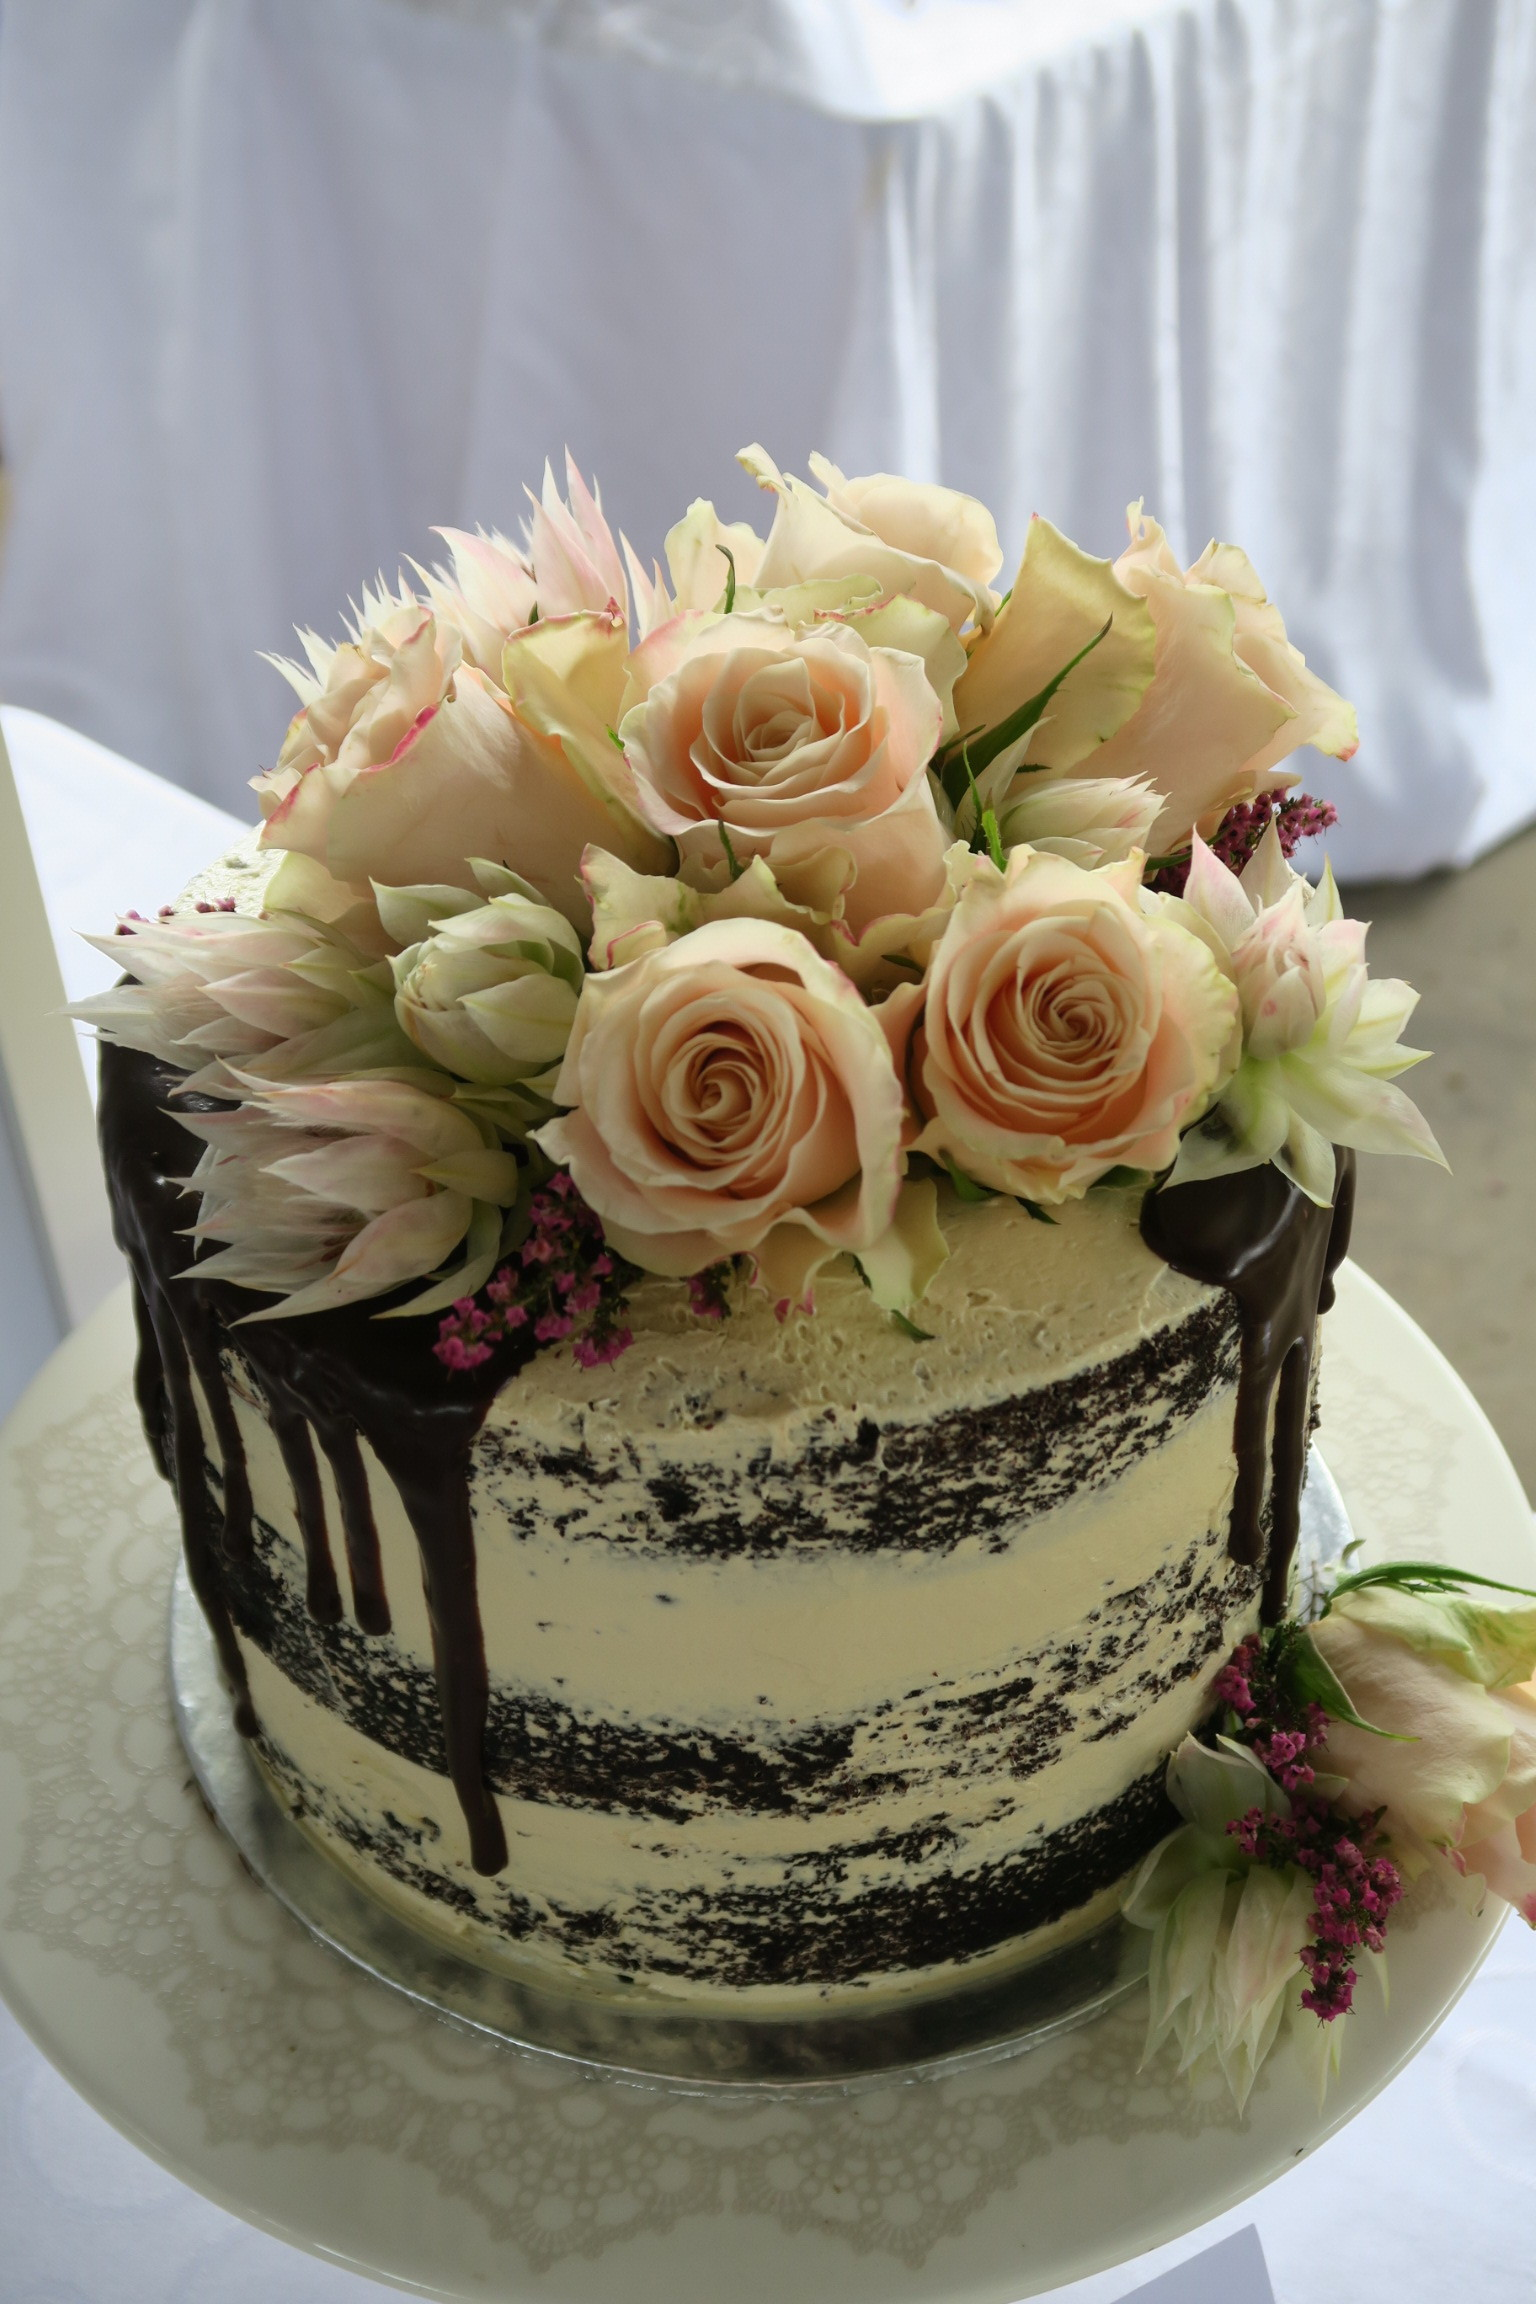 Chocolate cake with espresso infused buttercream.JPG